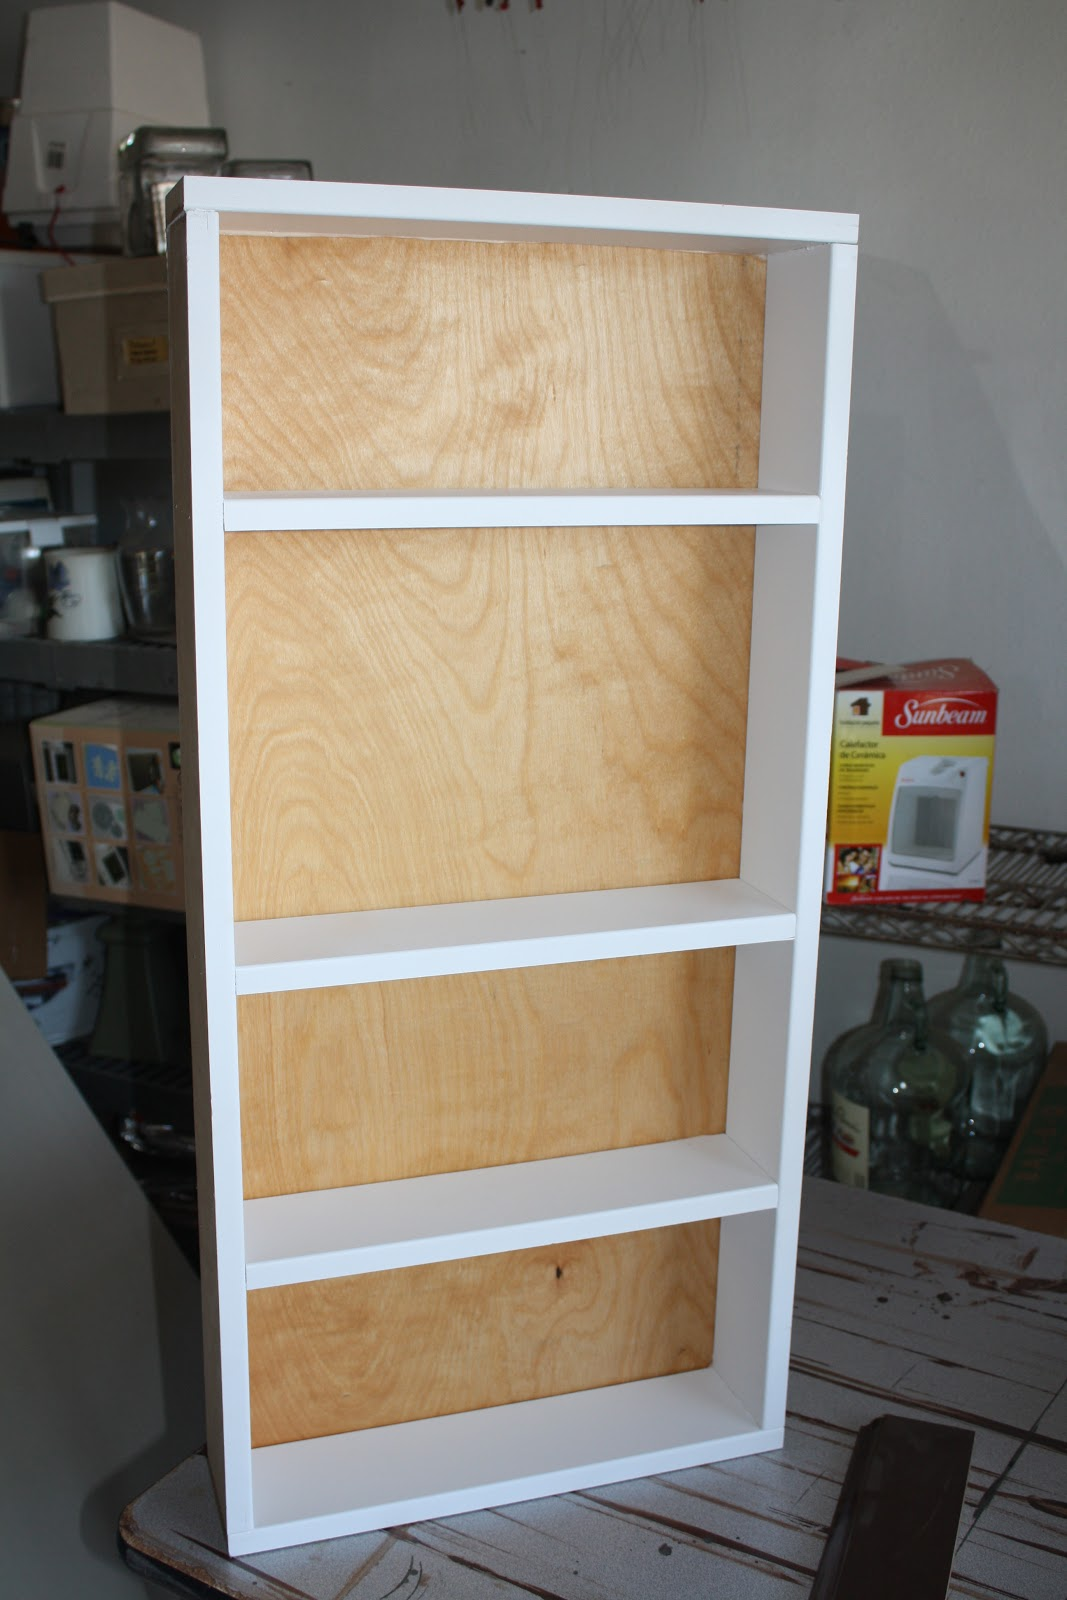 Passions And Pastimes Diy Recessed Shelving Part Ii